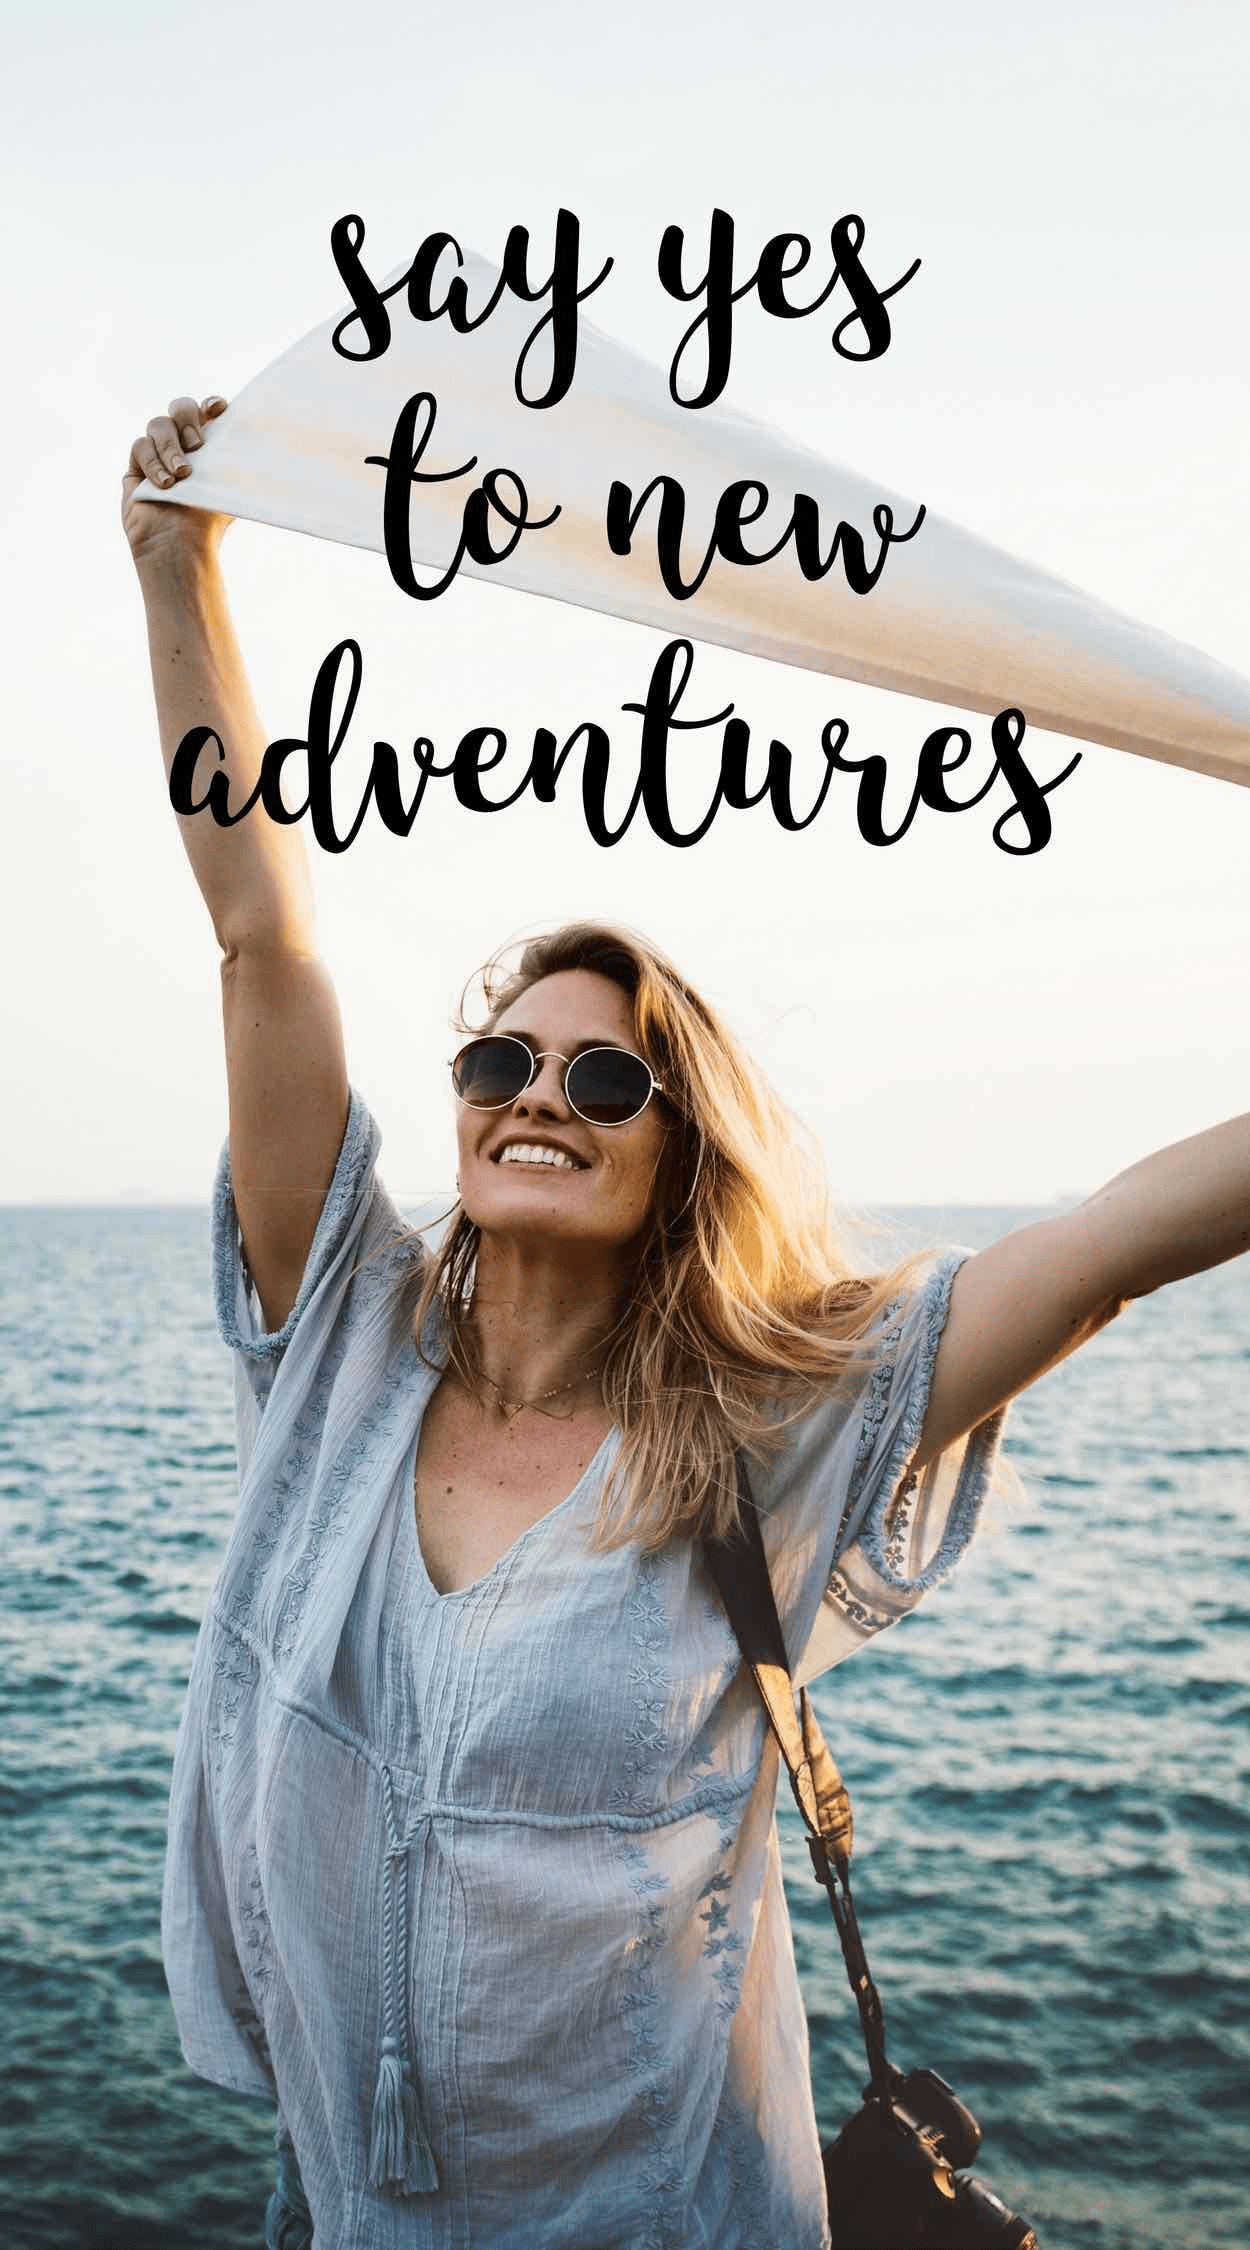 A woman raising her arms to a new adventure